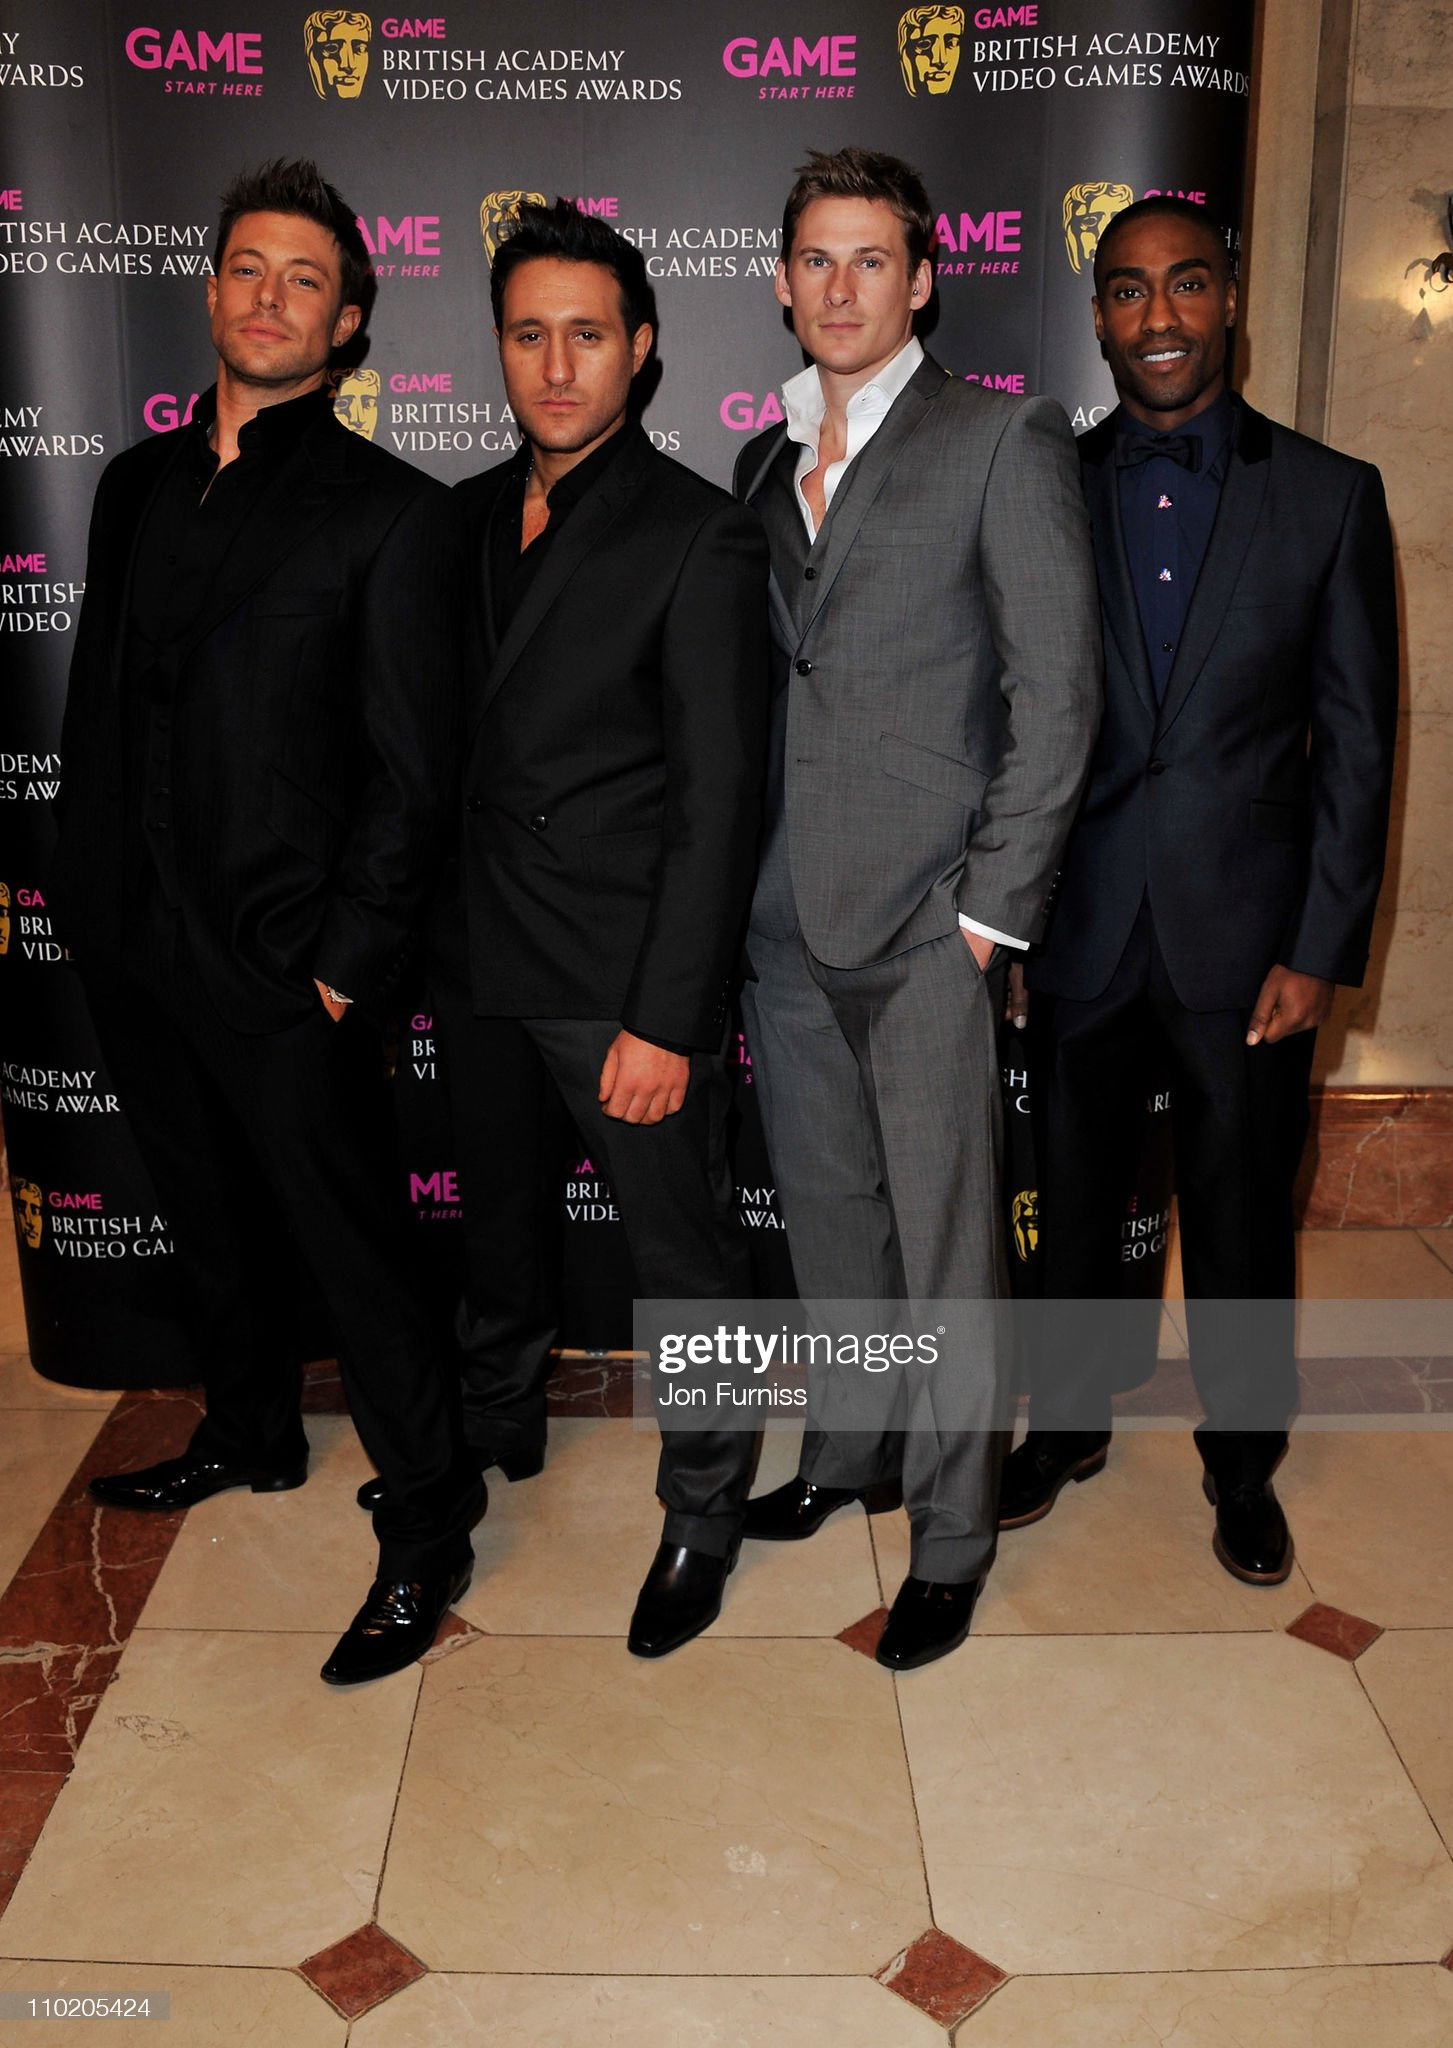 ¿Cuánto mide Antony Costa? - Real height Simon-webbe-lee-ryan-antony-costa-and-duncan-james-of-blue-attend-the-picture-id110205424?s=2048x2048